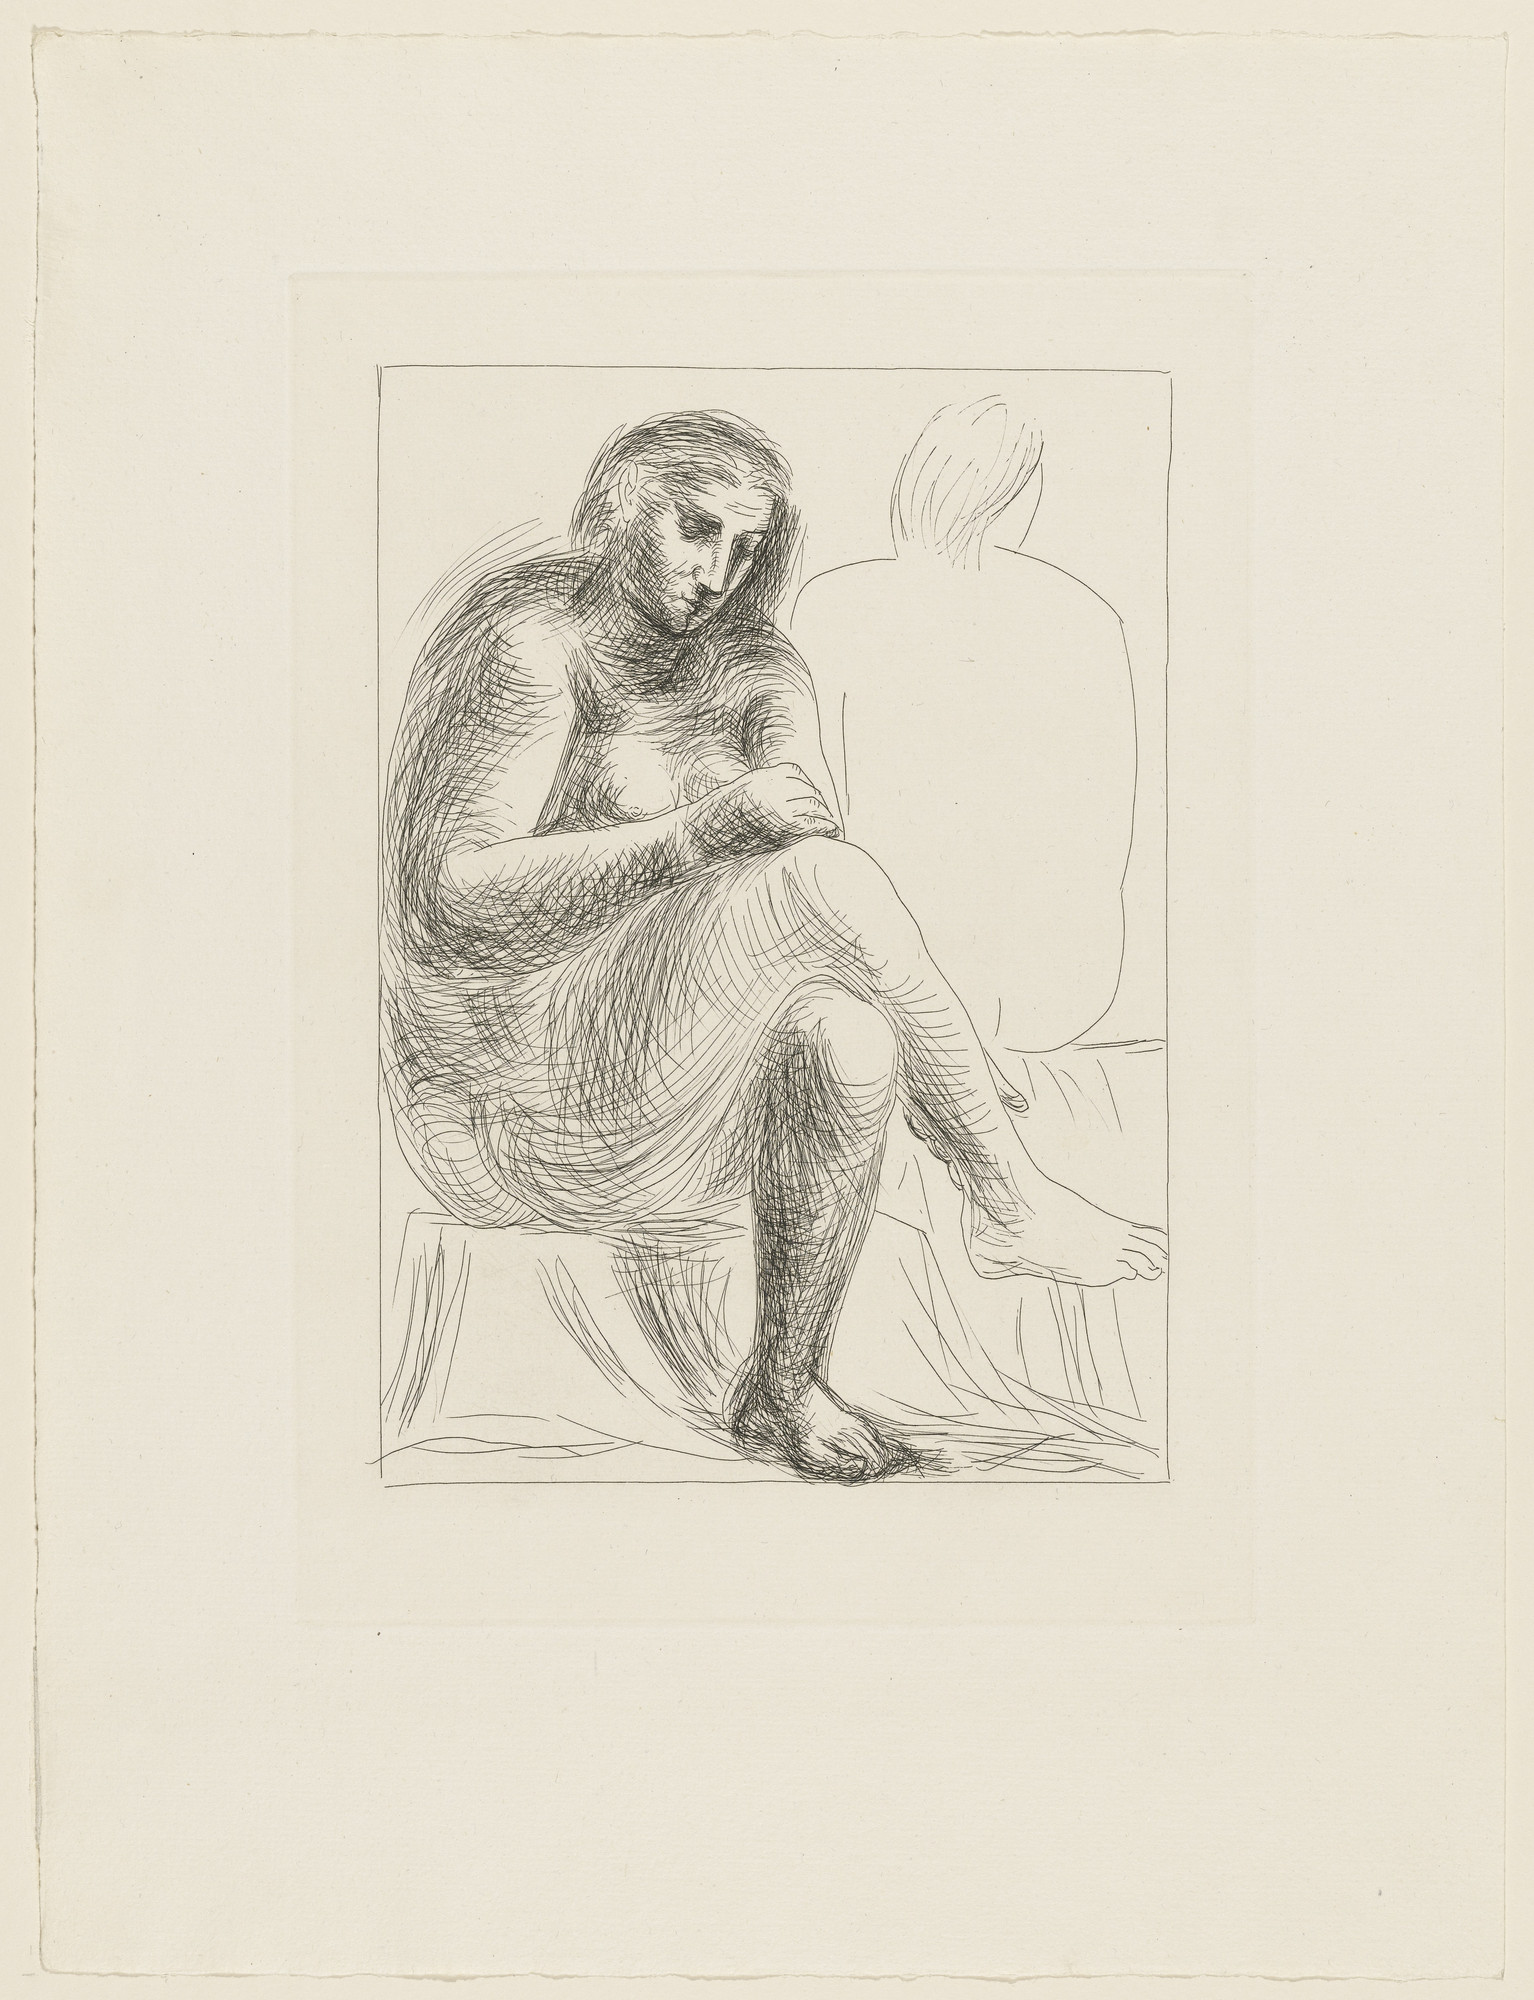 Pablo Picasso. At the Bath (Au bain) from the Vollard Suite (Suite Vollard). 1930, published 1939